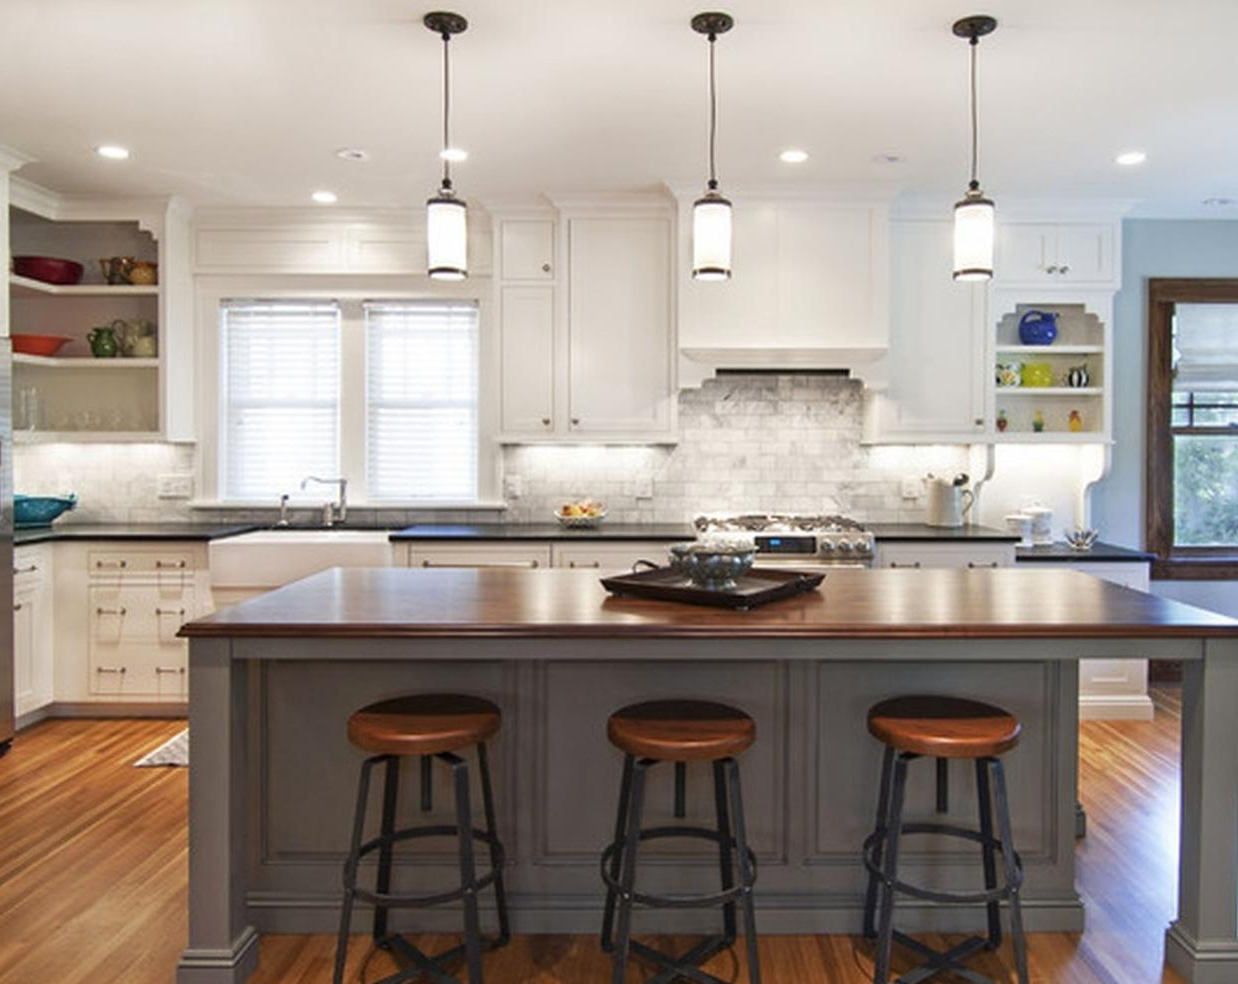 Kitchen Island Lighting With Current Gracelyn 8 Light Kitchen Island Pendants (View 23 of 25)